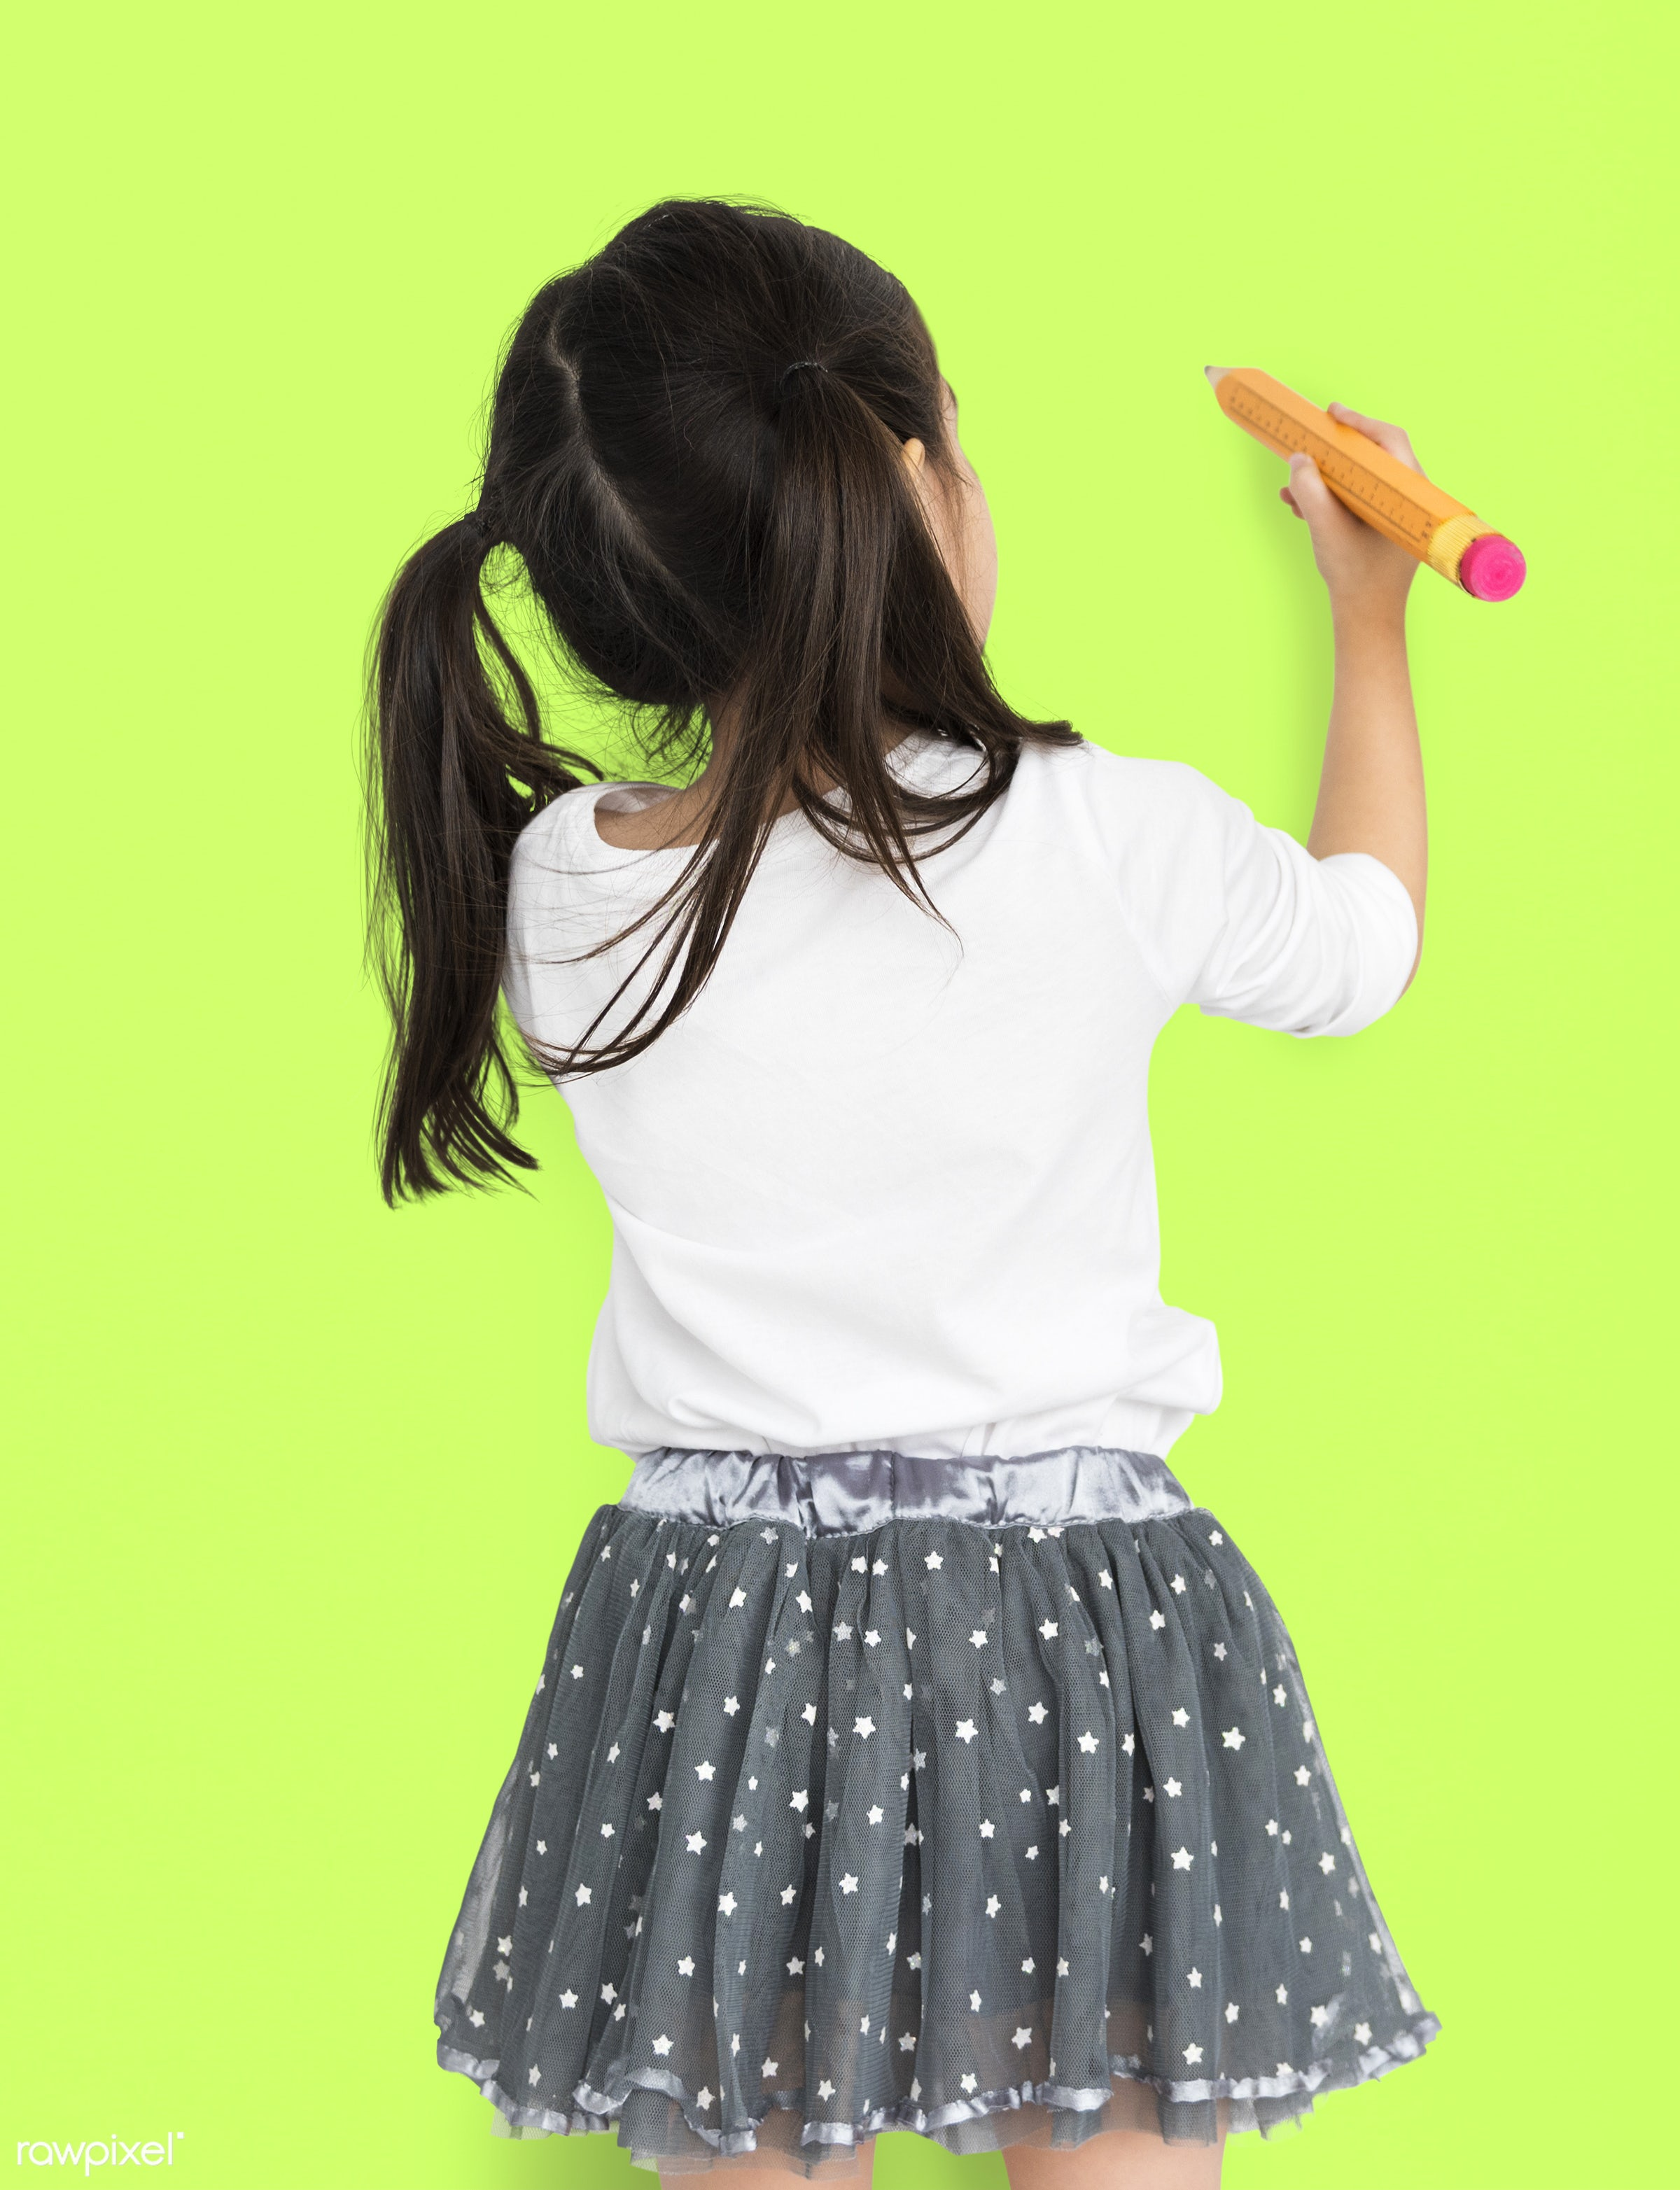 studio, expression, person, little, recreation, people, kid, isolated, little girl, happiness, paint, leisure, fun, shoot,...